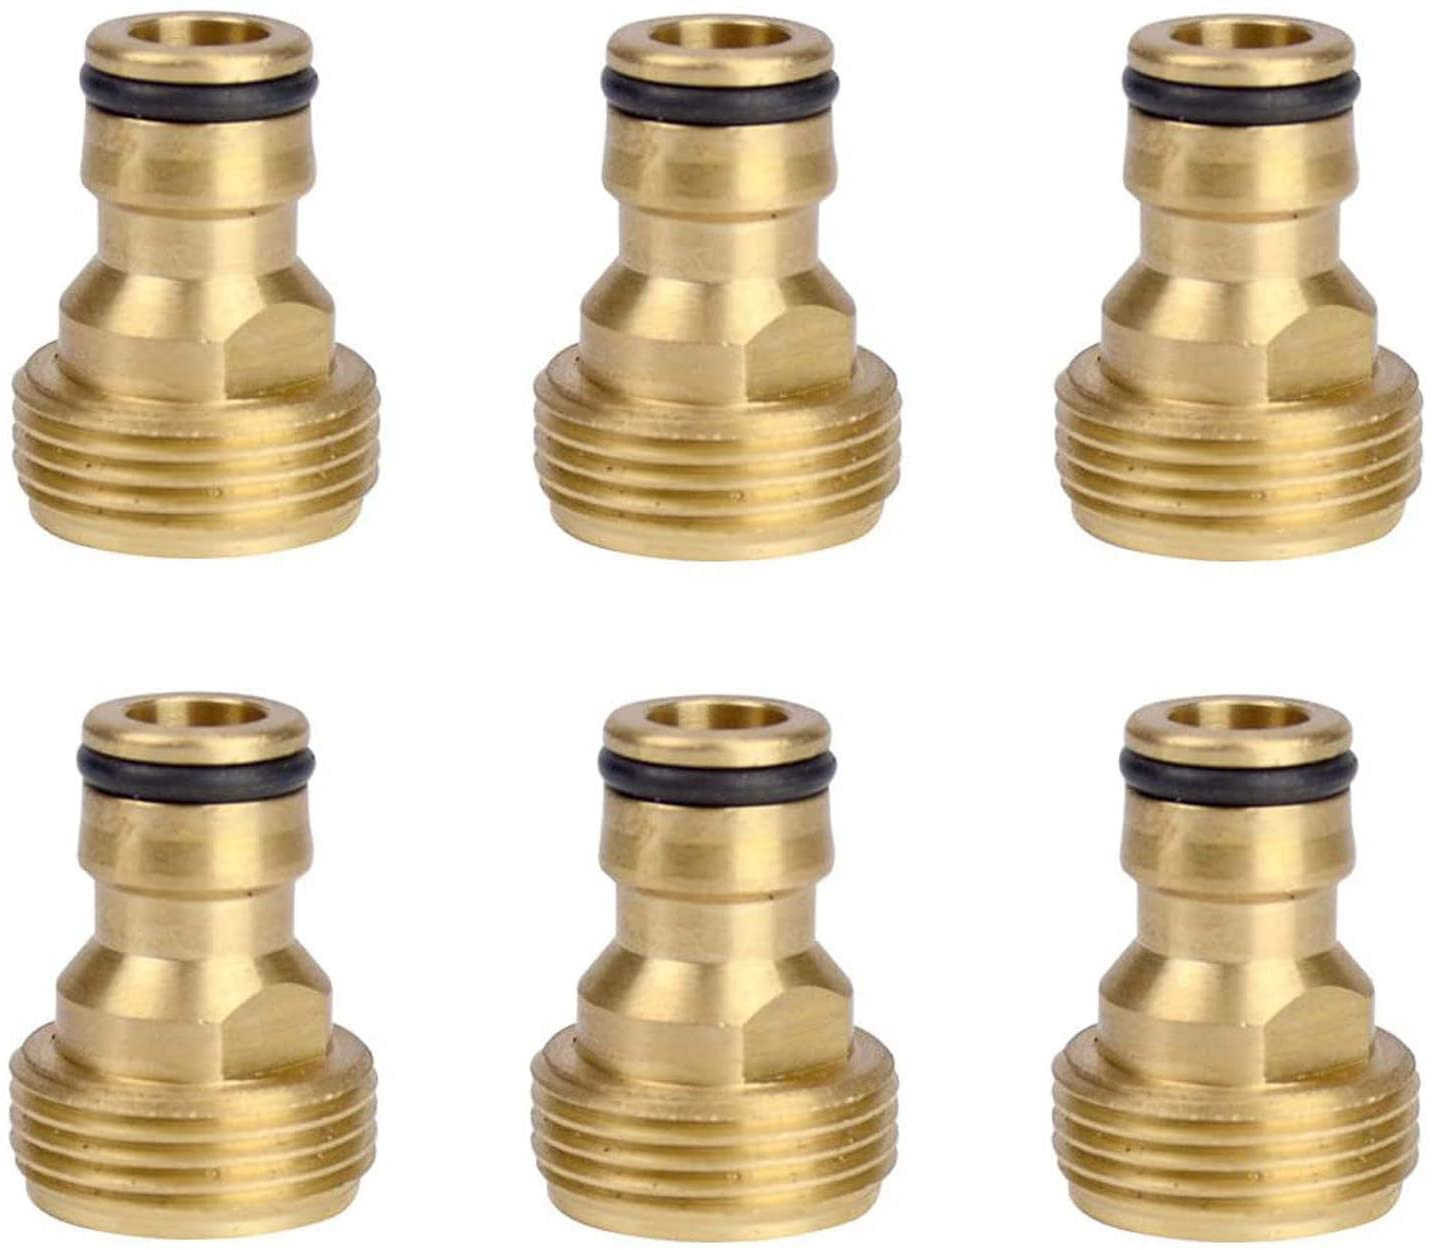 6Pcs Brass Garden Lawn Water Hose Pipe Fitting Connector